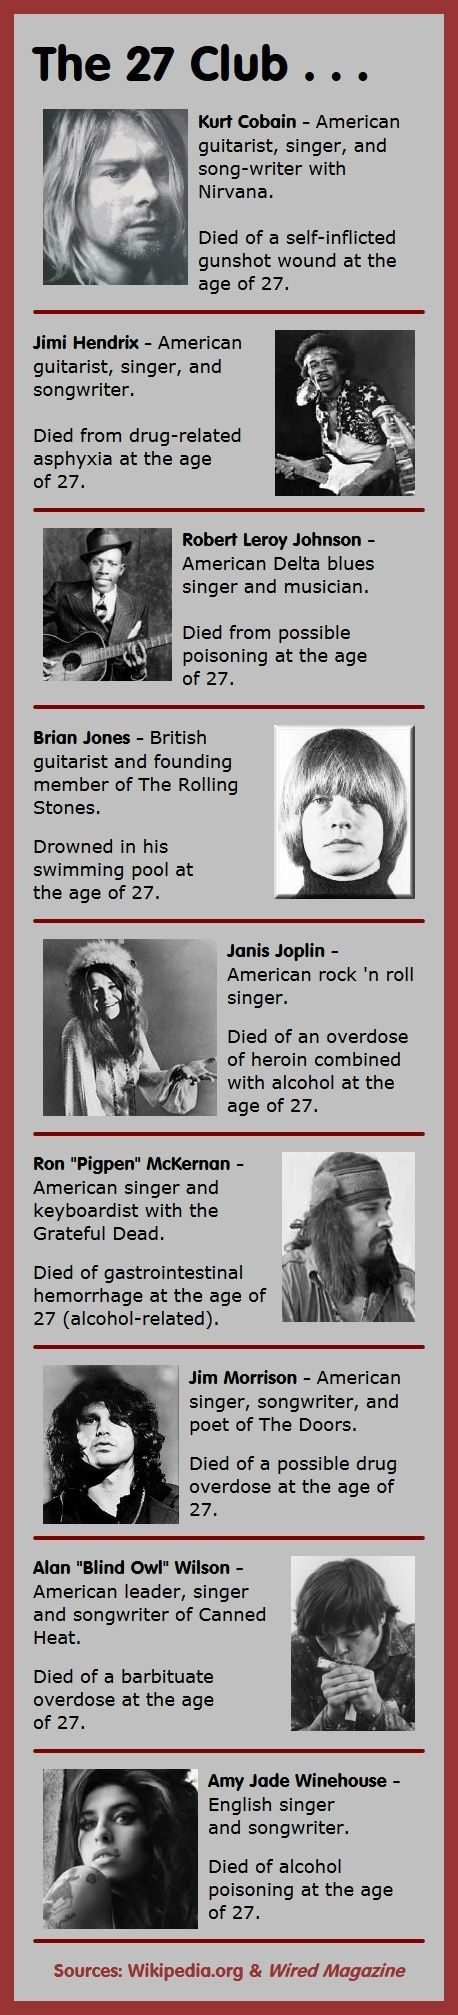 Here are 9 members of the 27 Club – musicians who have died in tragic circumstances at the age of 27.